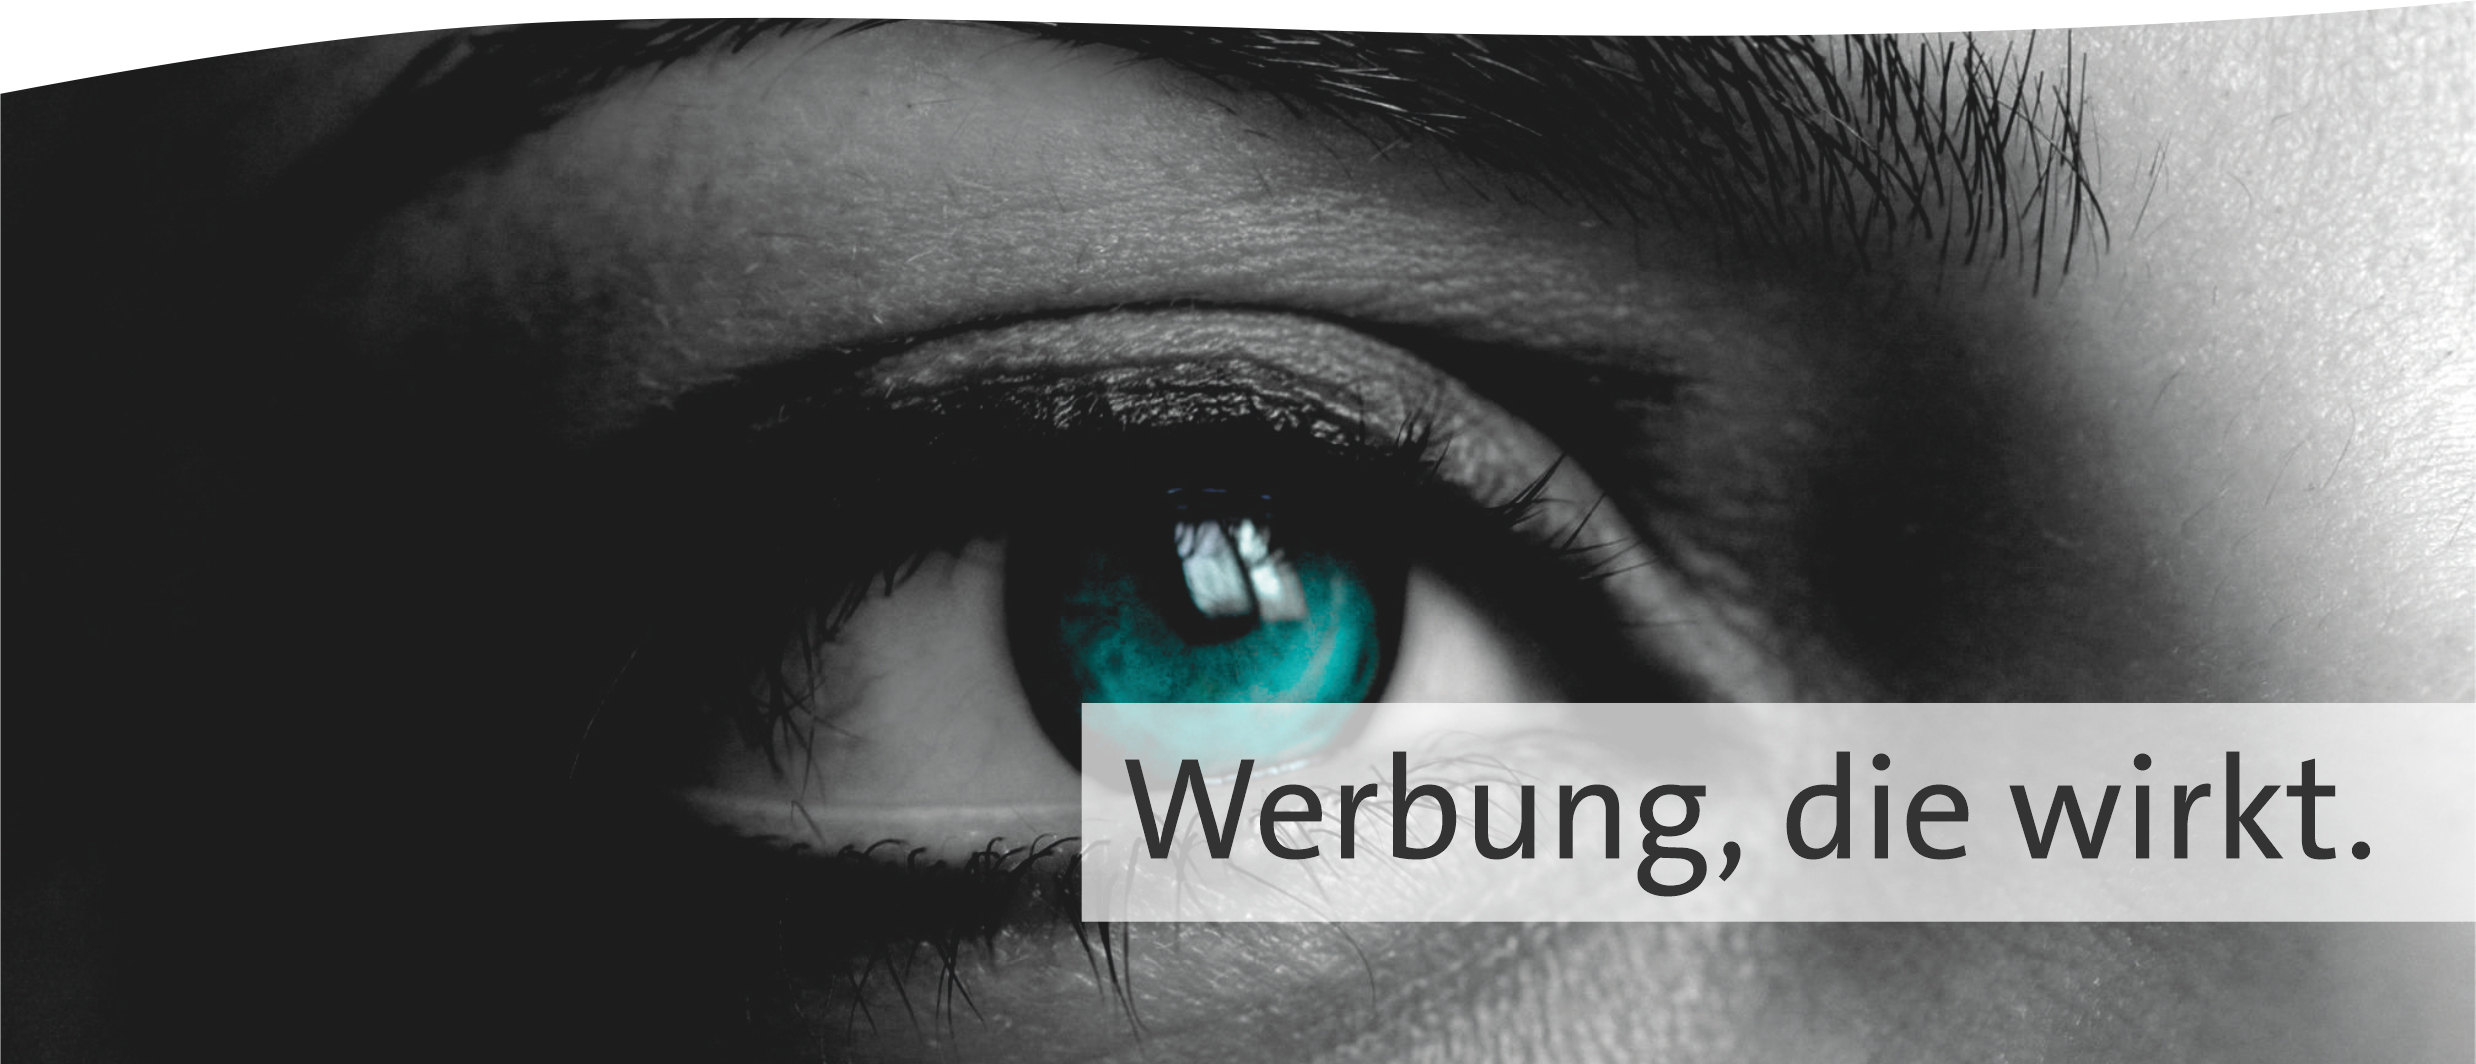 Harmuth Auge